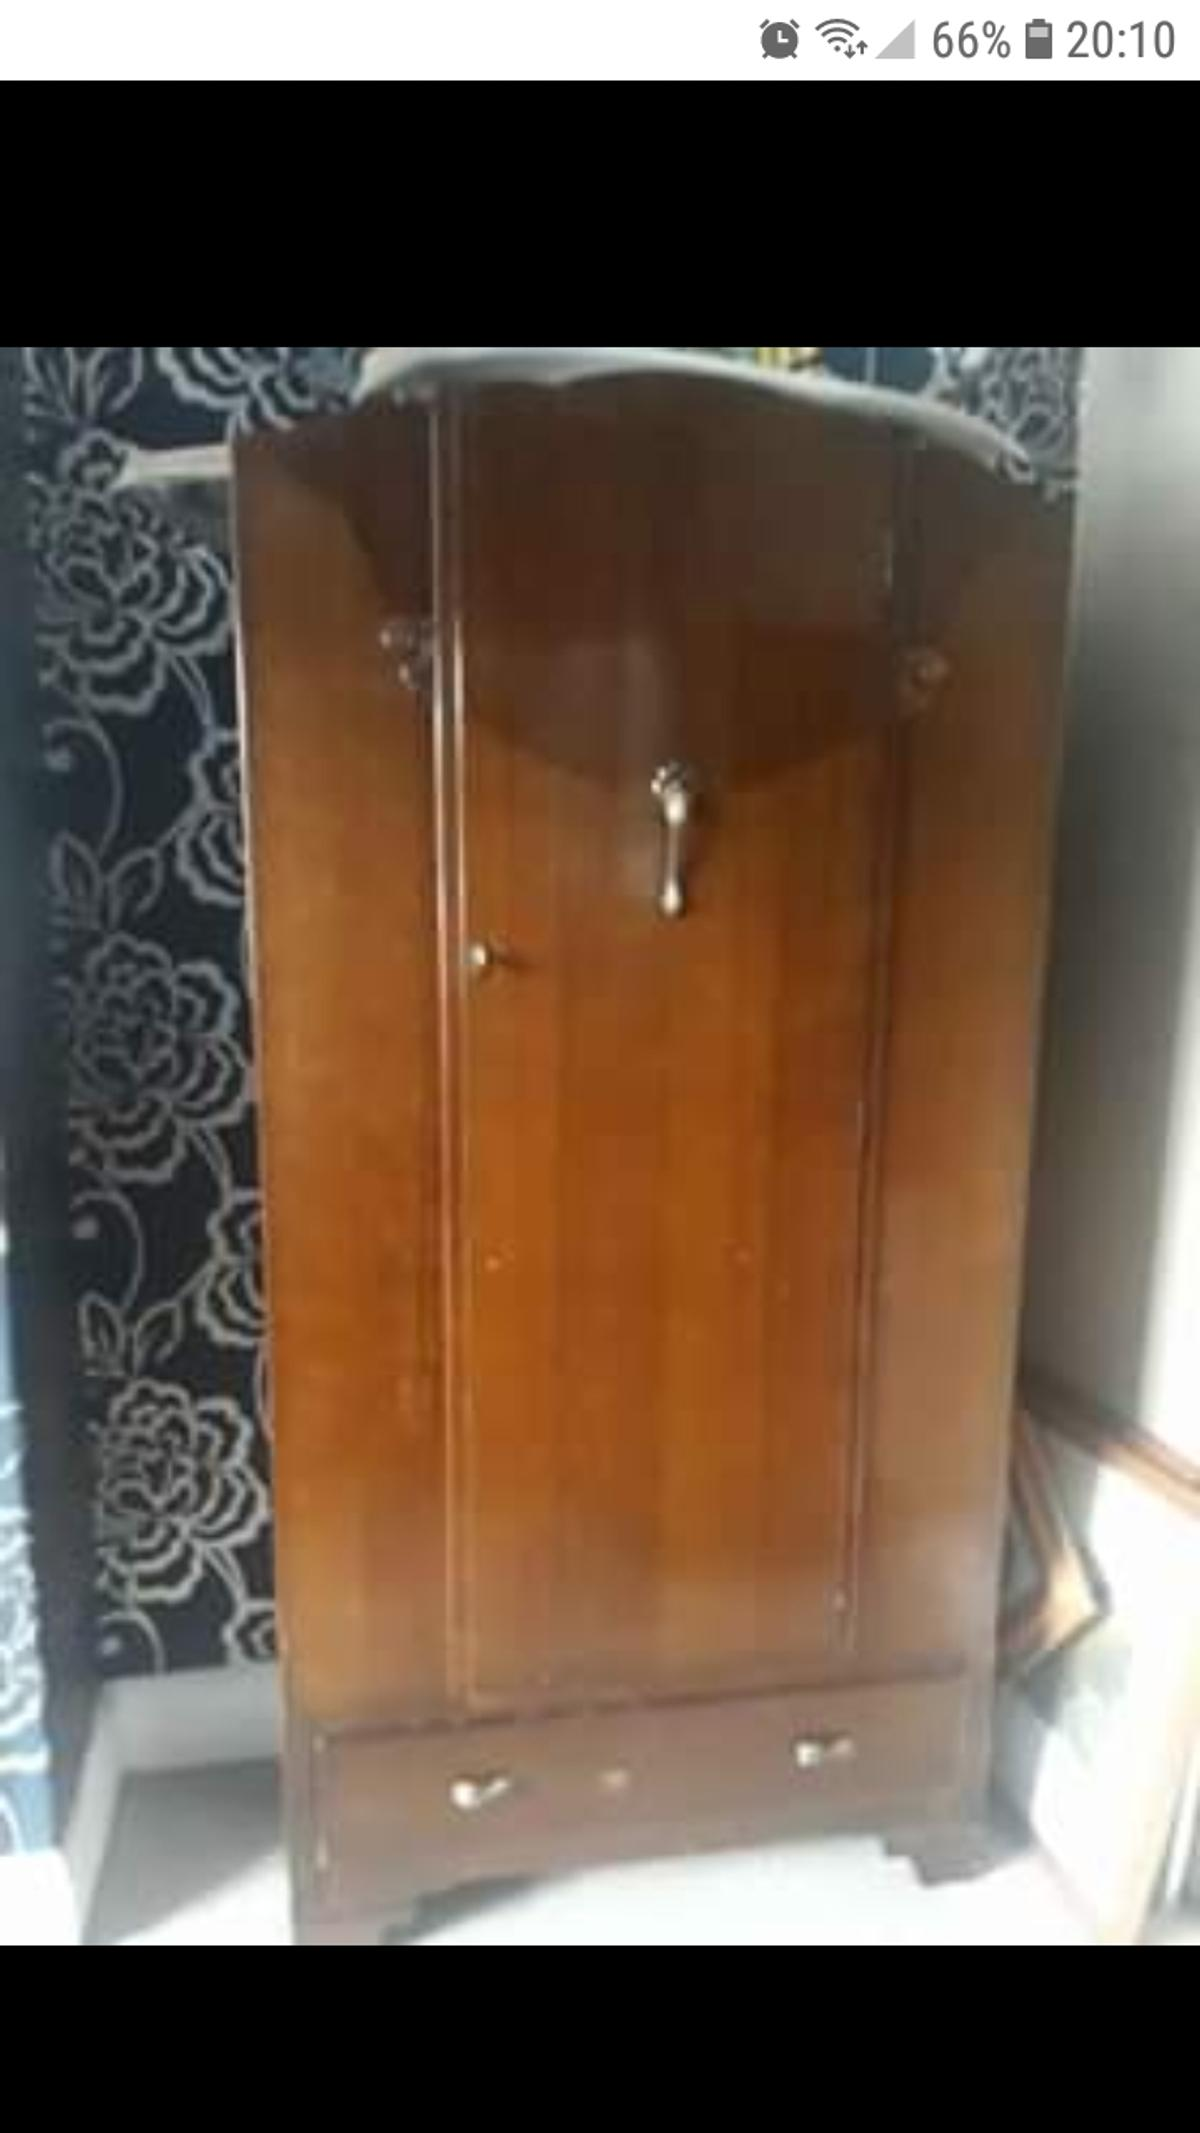 vintage oak veneer wardrobe been told 1930's 1940's 186cm high 93cm wide 43cm depth ideal for upcycling shabby chic good and solid with odd little scrap due to age I'm Whitby area possible delivery within reason